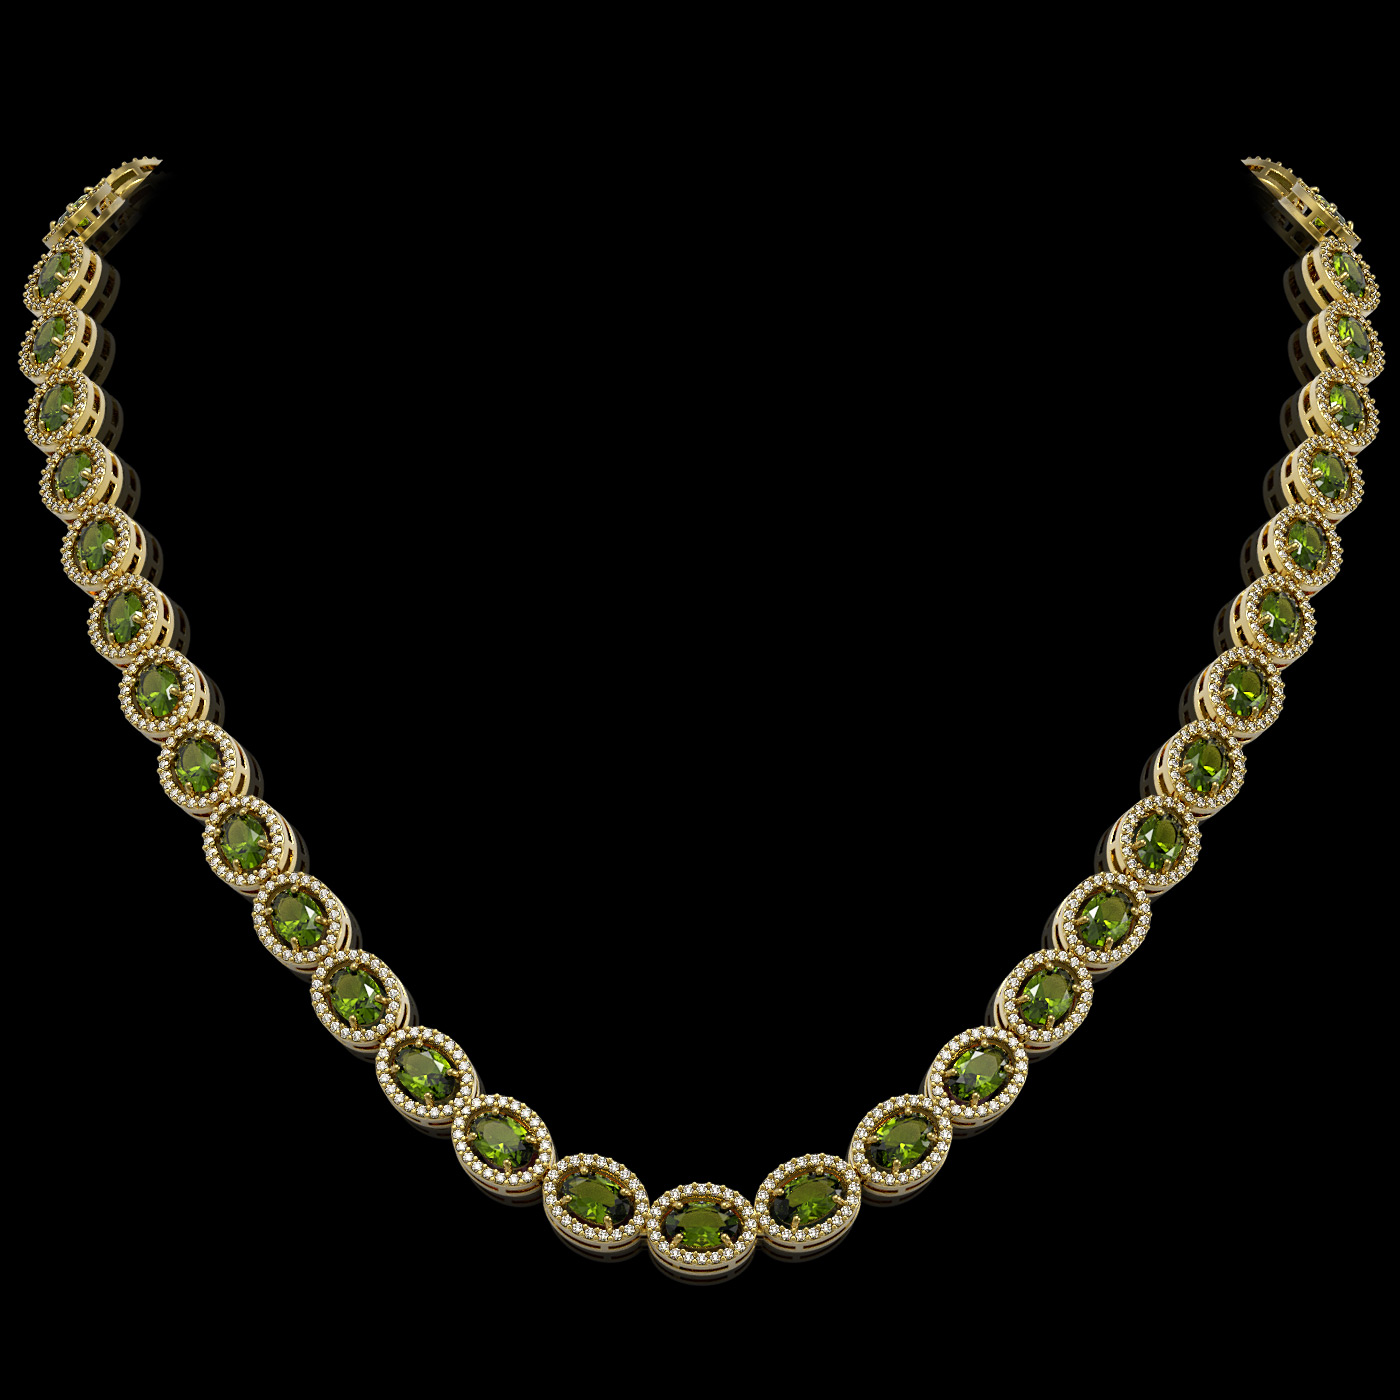 31.1 Ctw Tourmaline & Diamond Necklace Yellow Gold